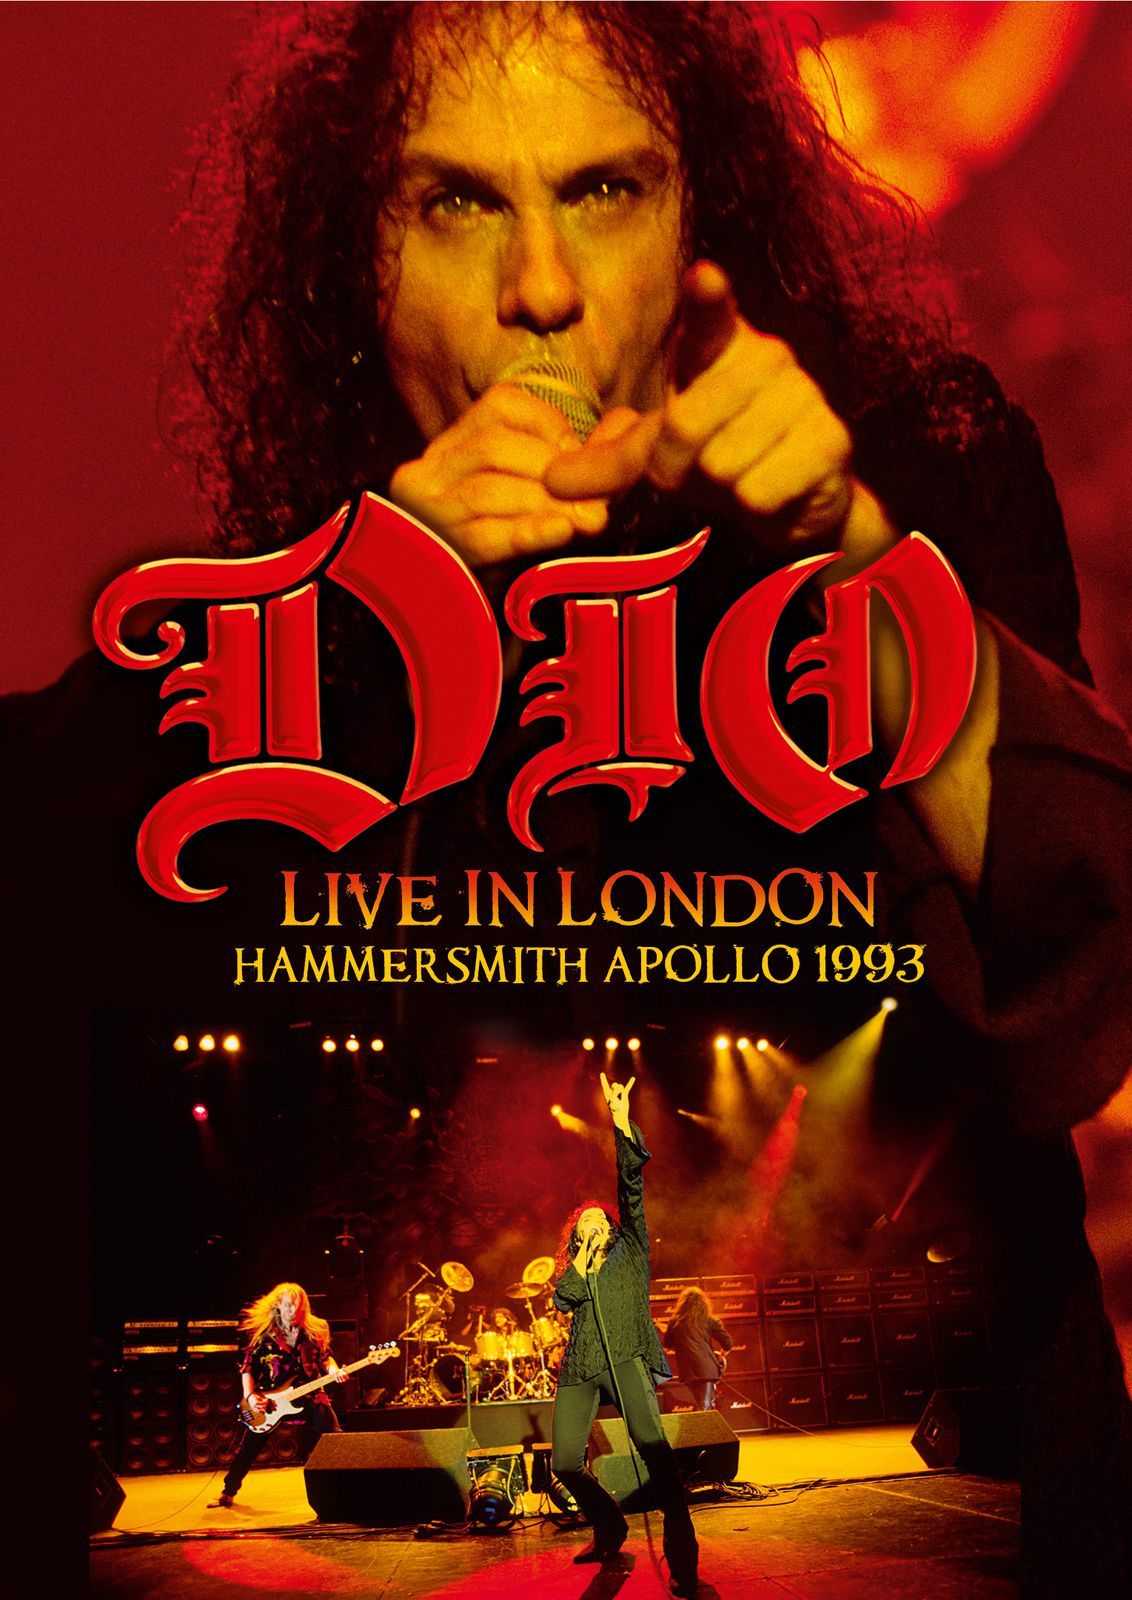 New live DVD from RONNIE JAMES DIO in May